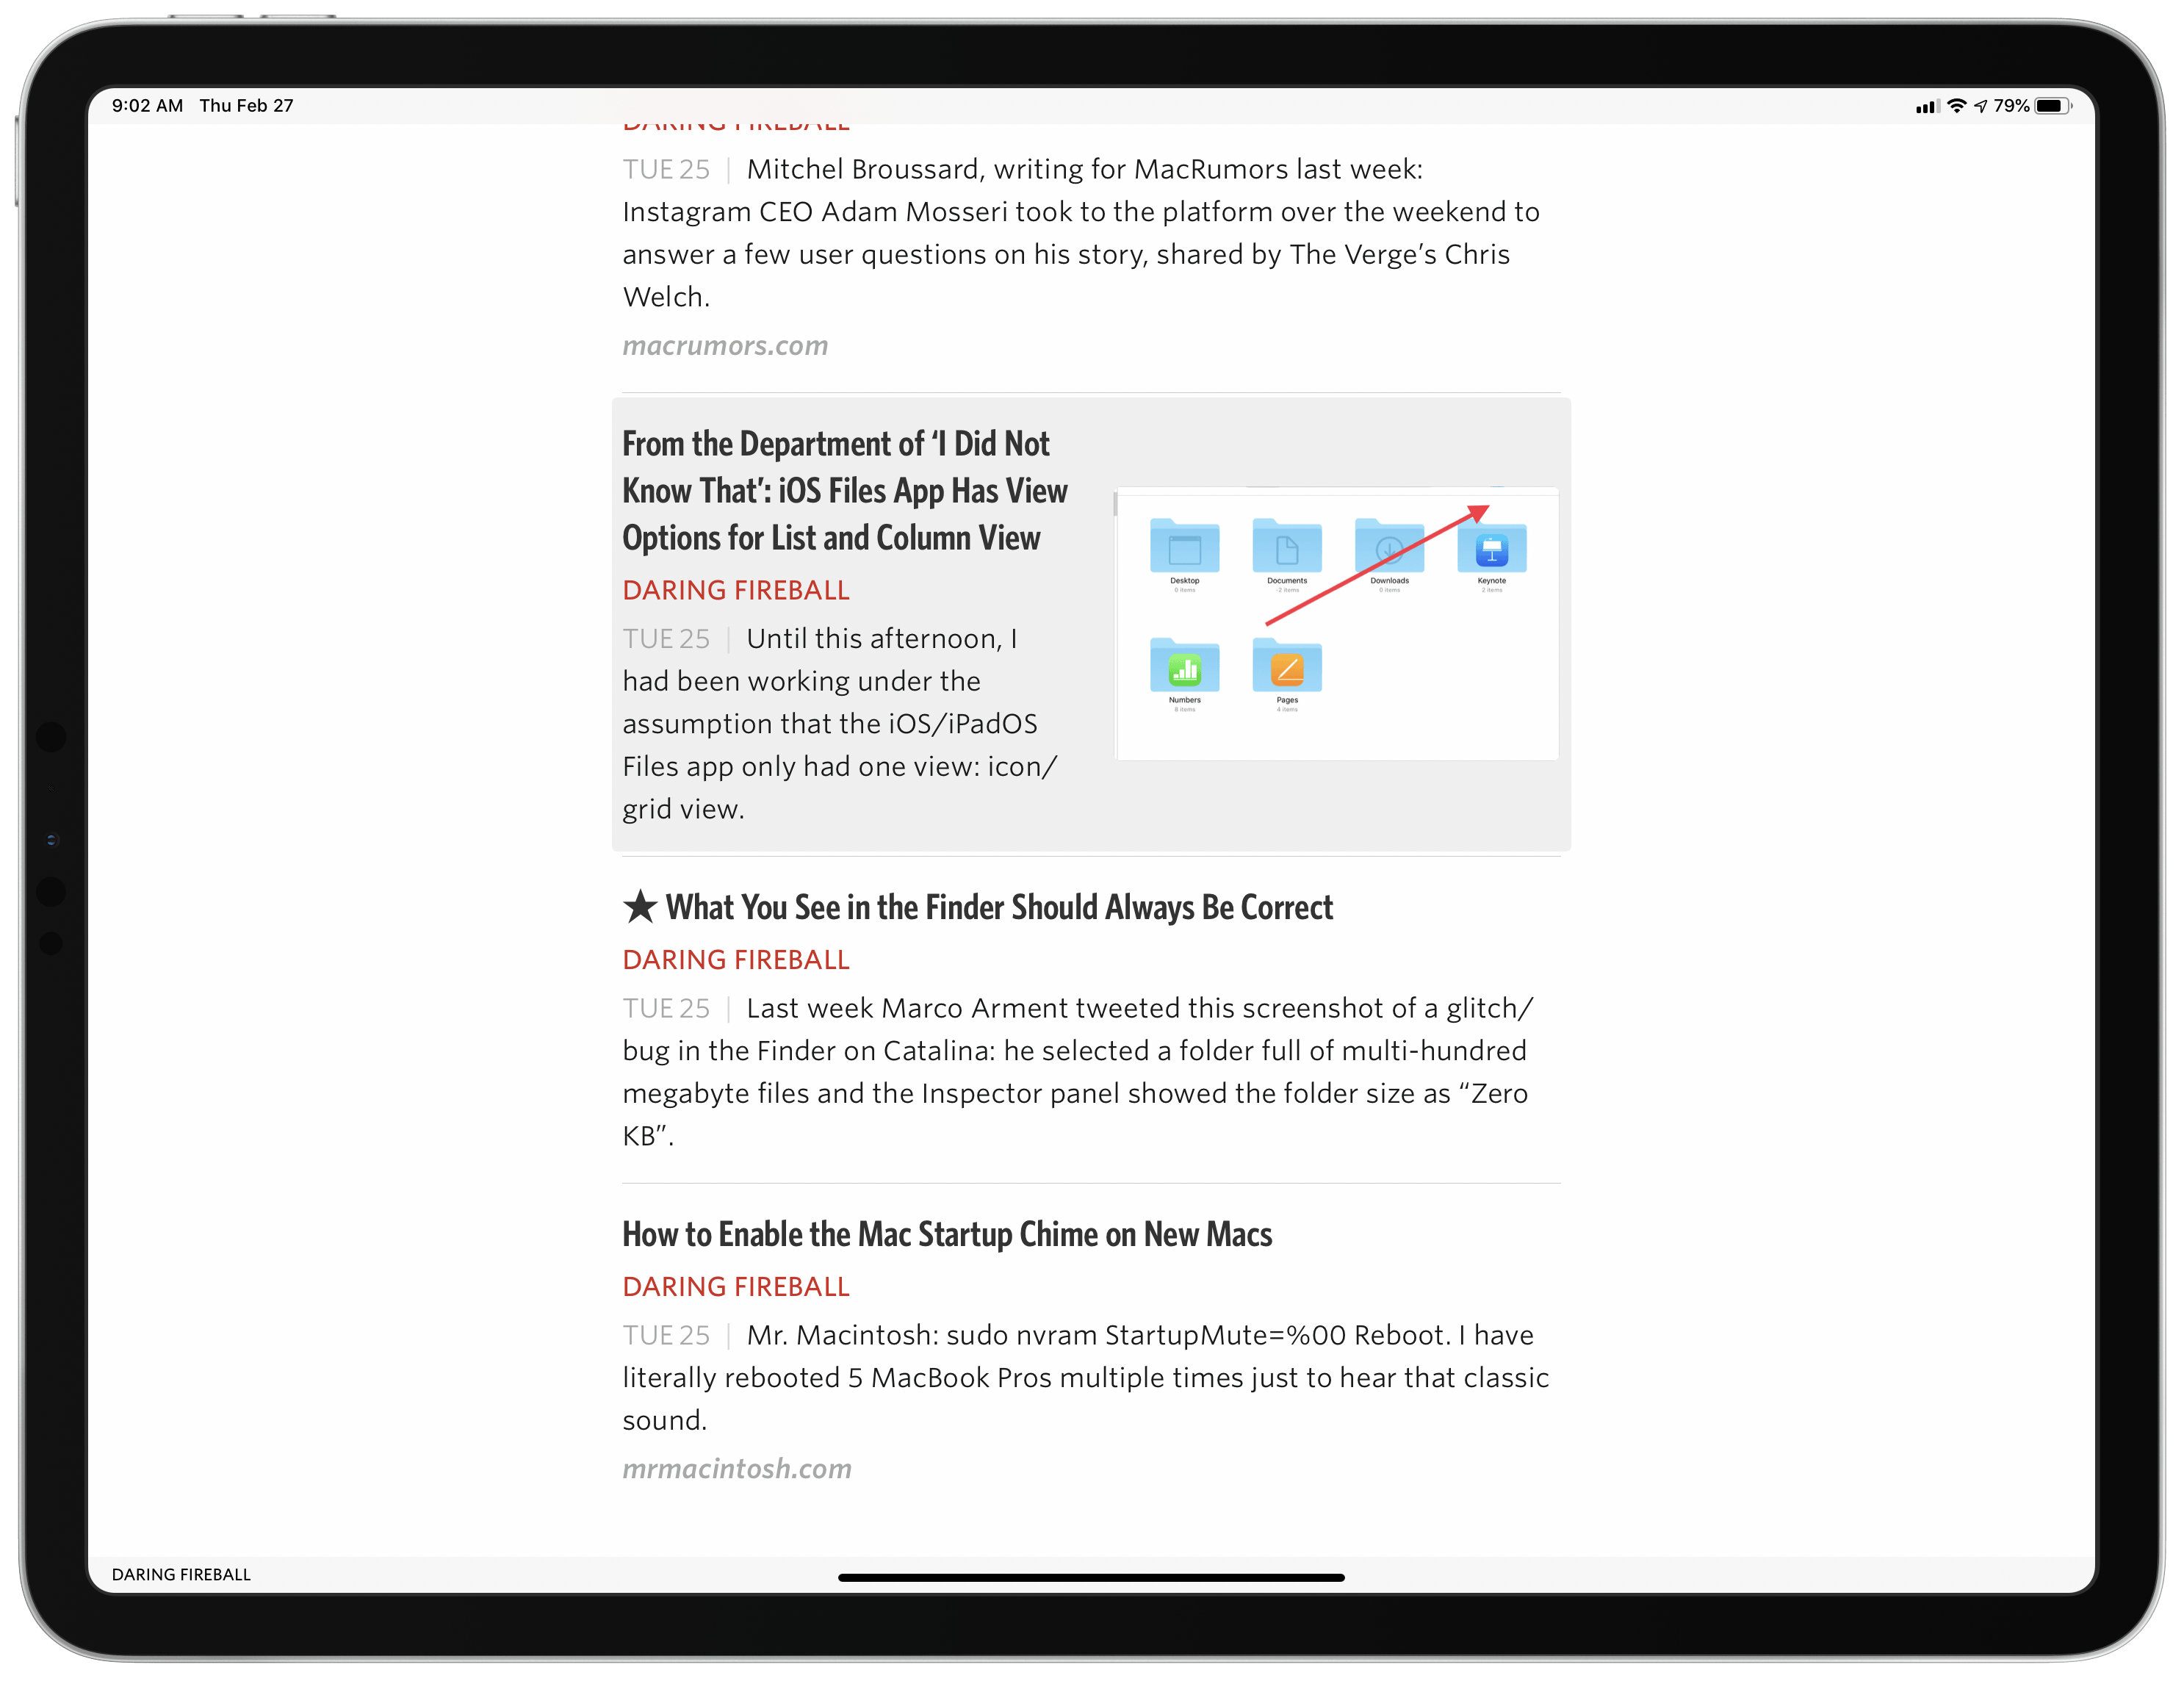 Articles are highlighted as you navigate them via keyboard.